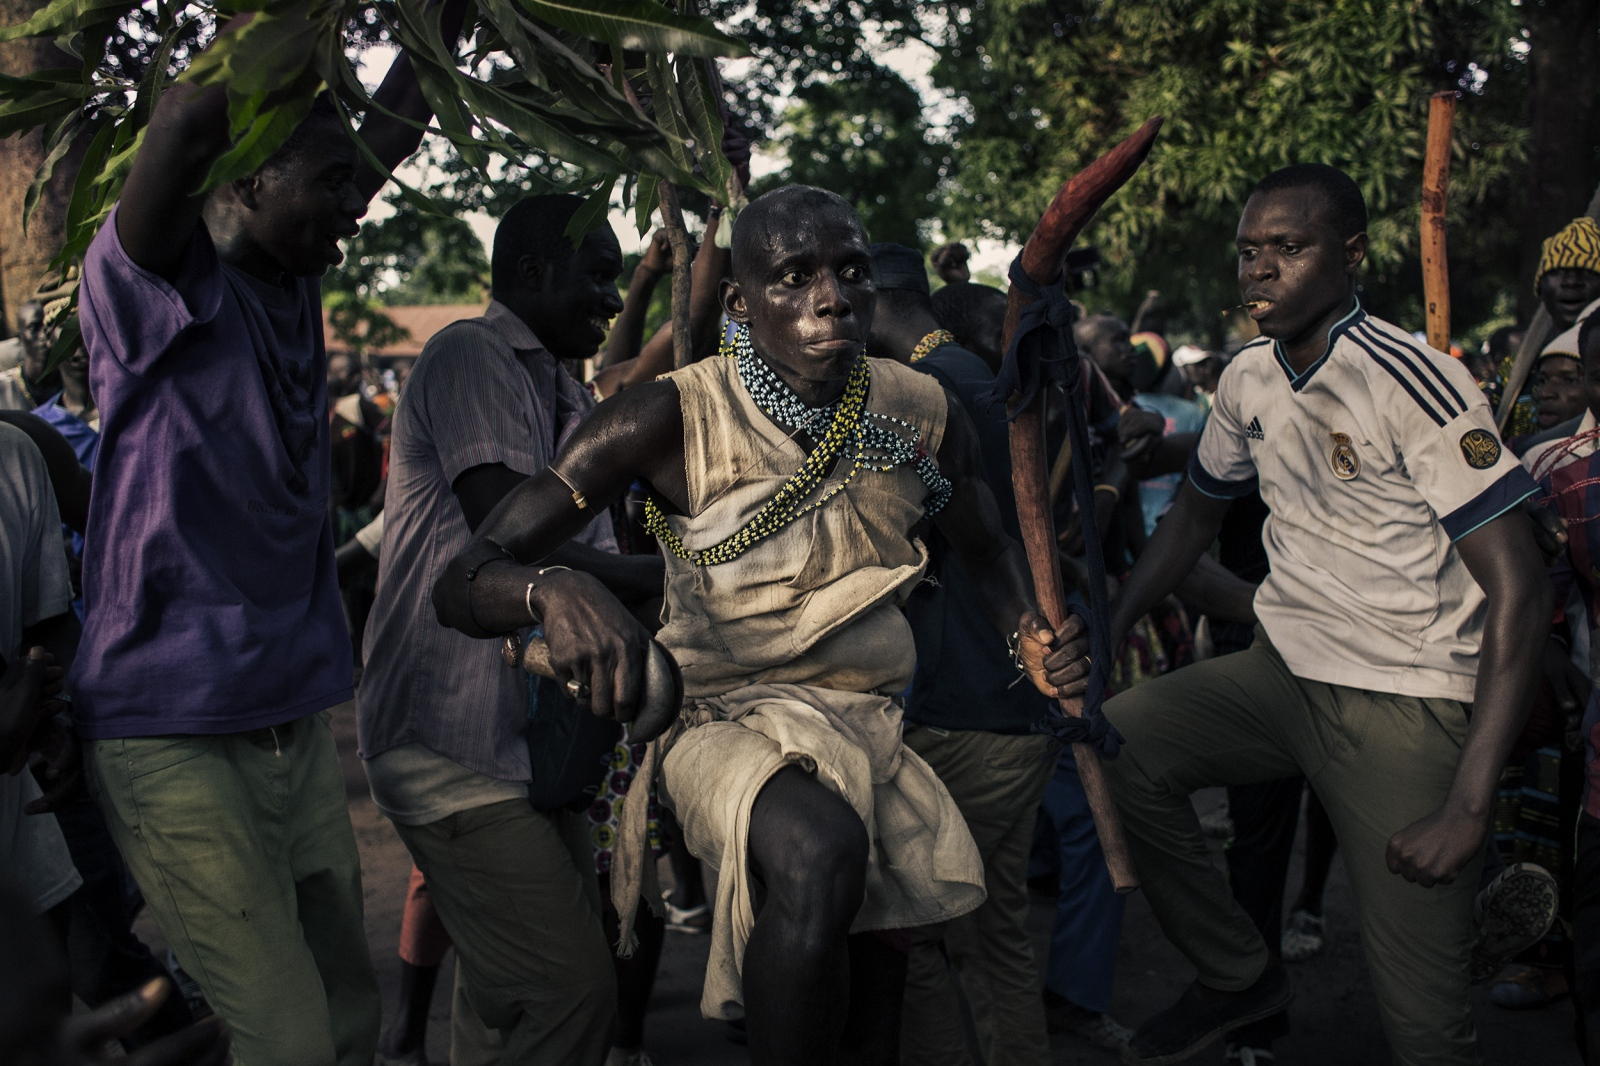 A boy dances before to enter to the forest, supported by his men relatives, in order to say goodbye to their family